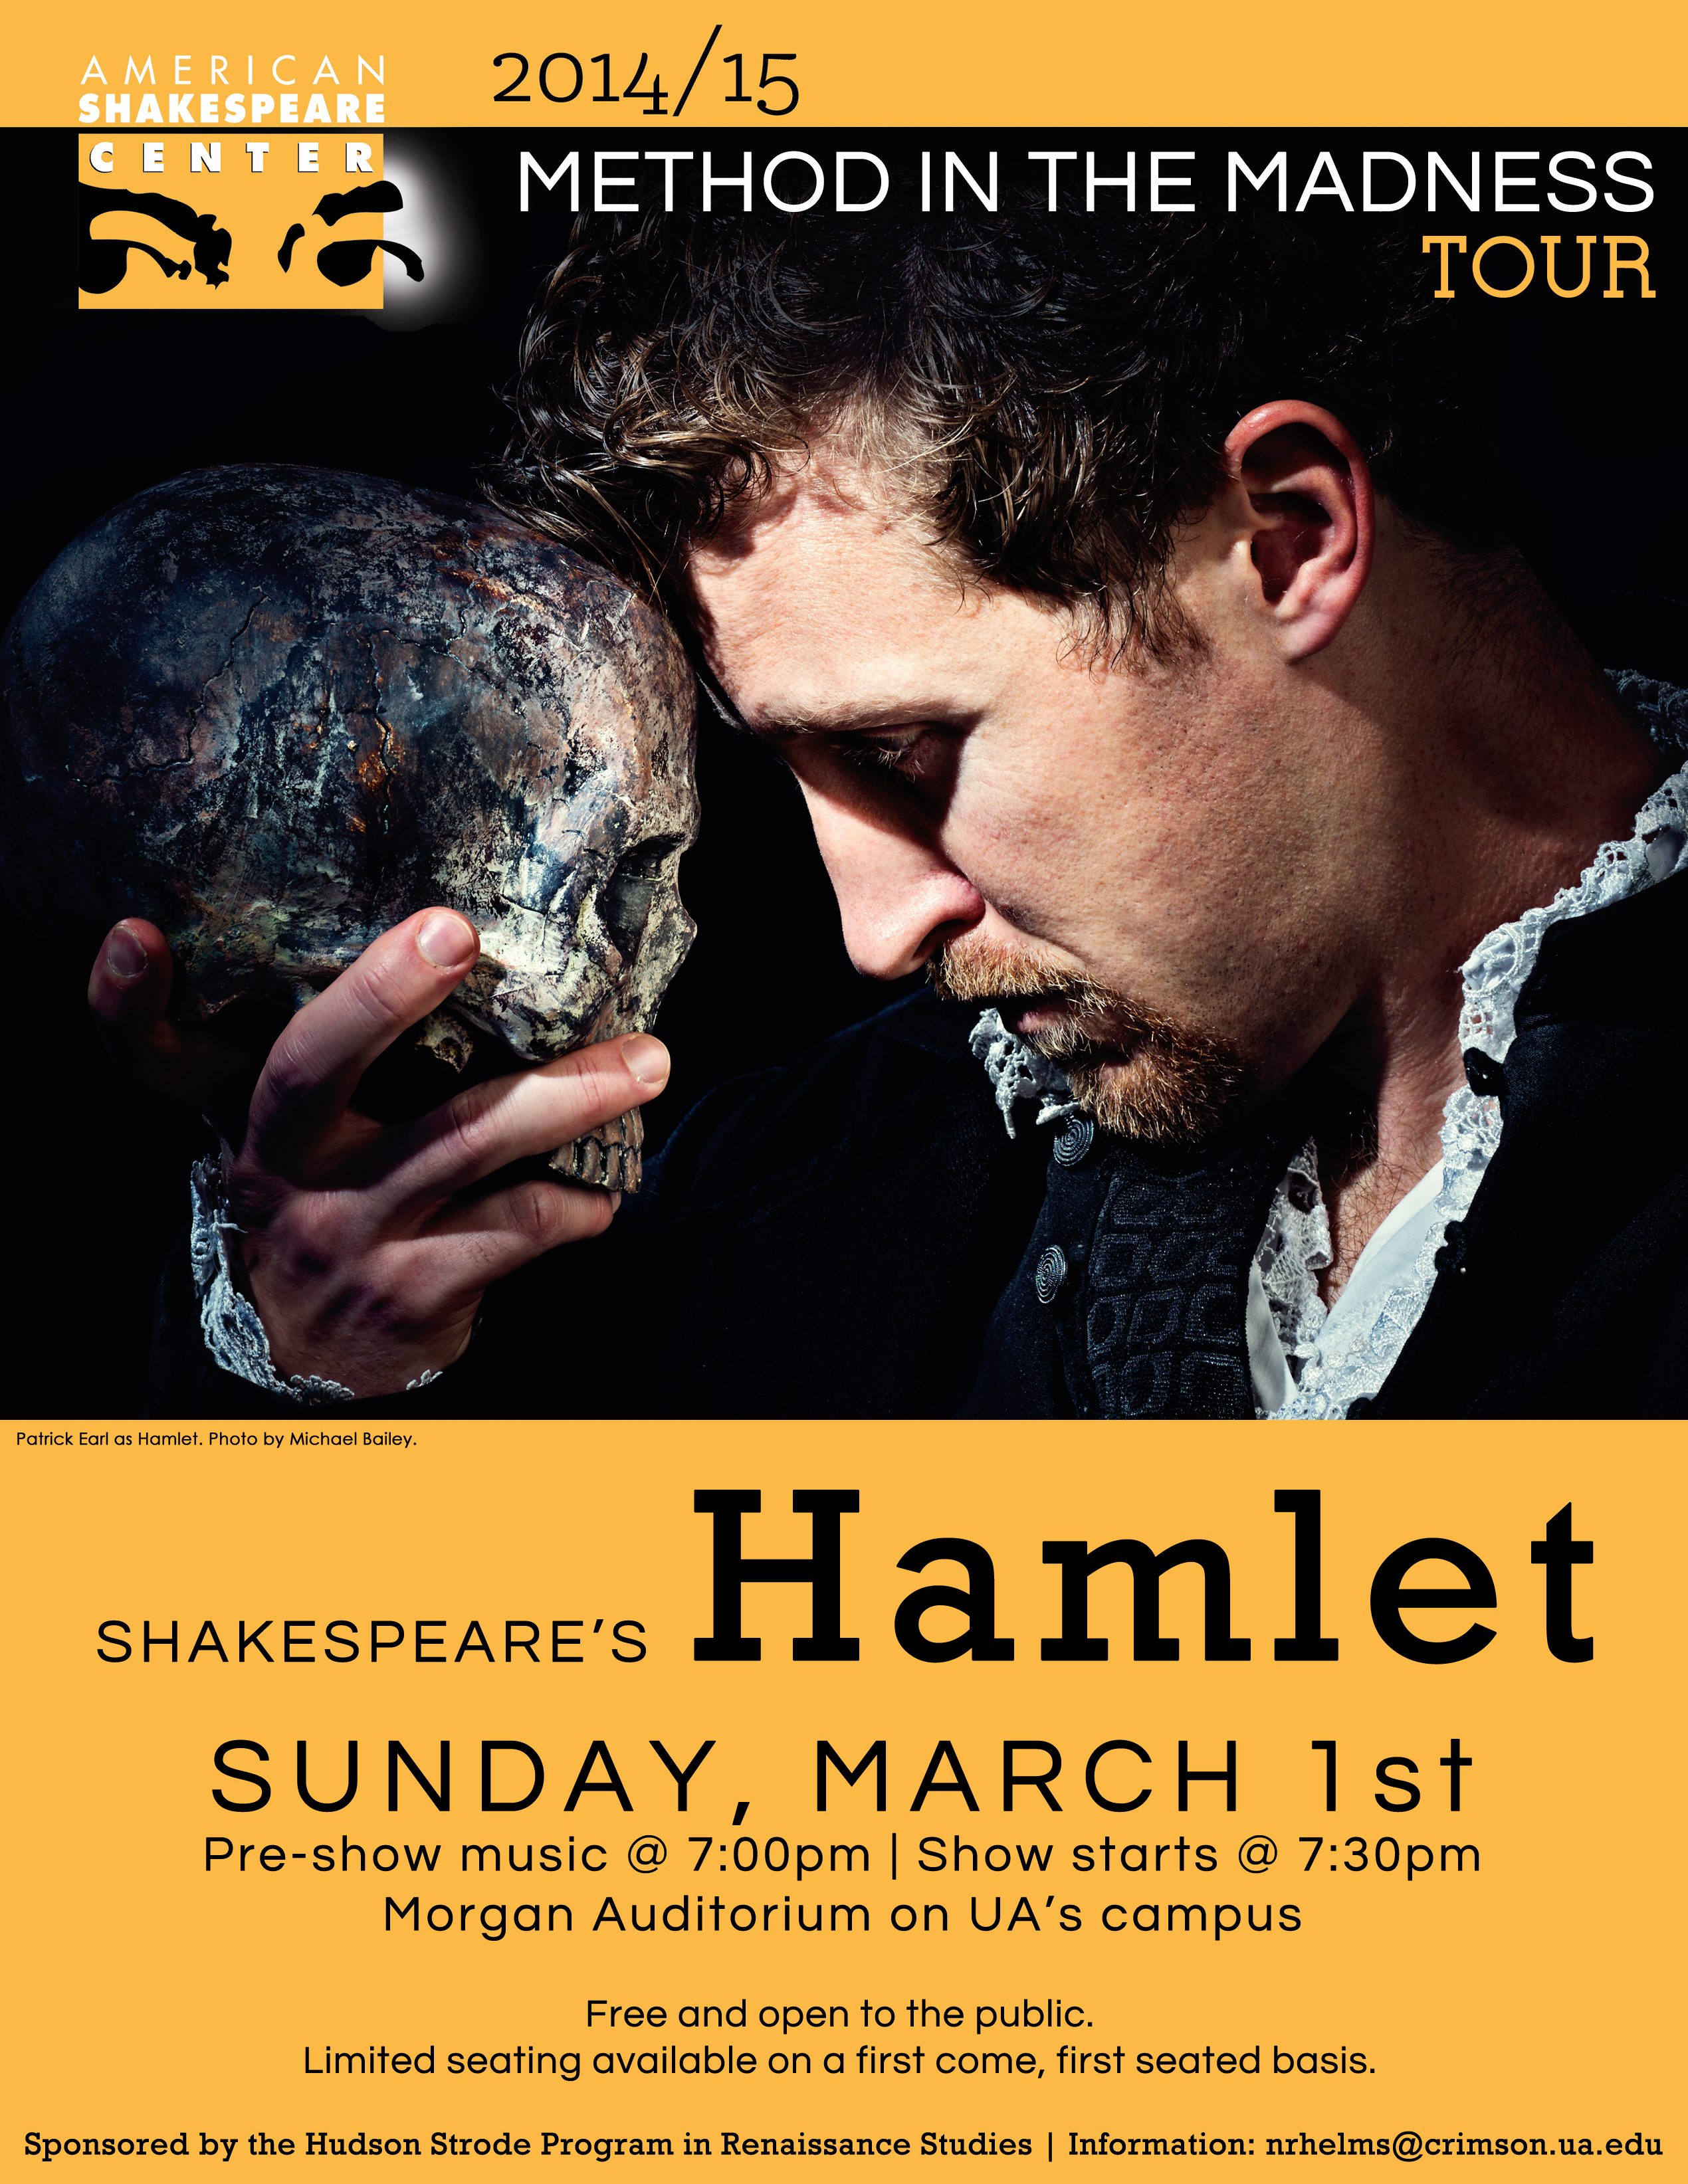 the madness of shakespeares hamlet